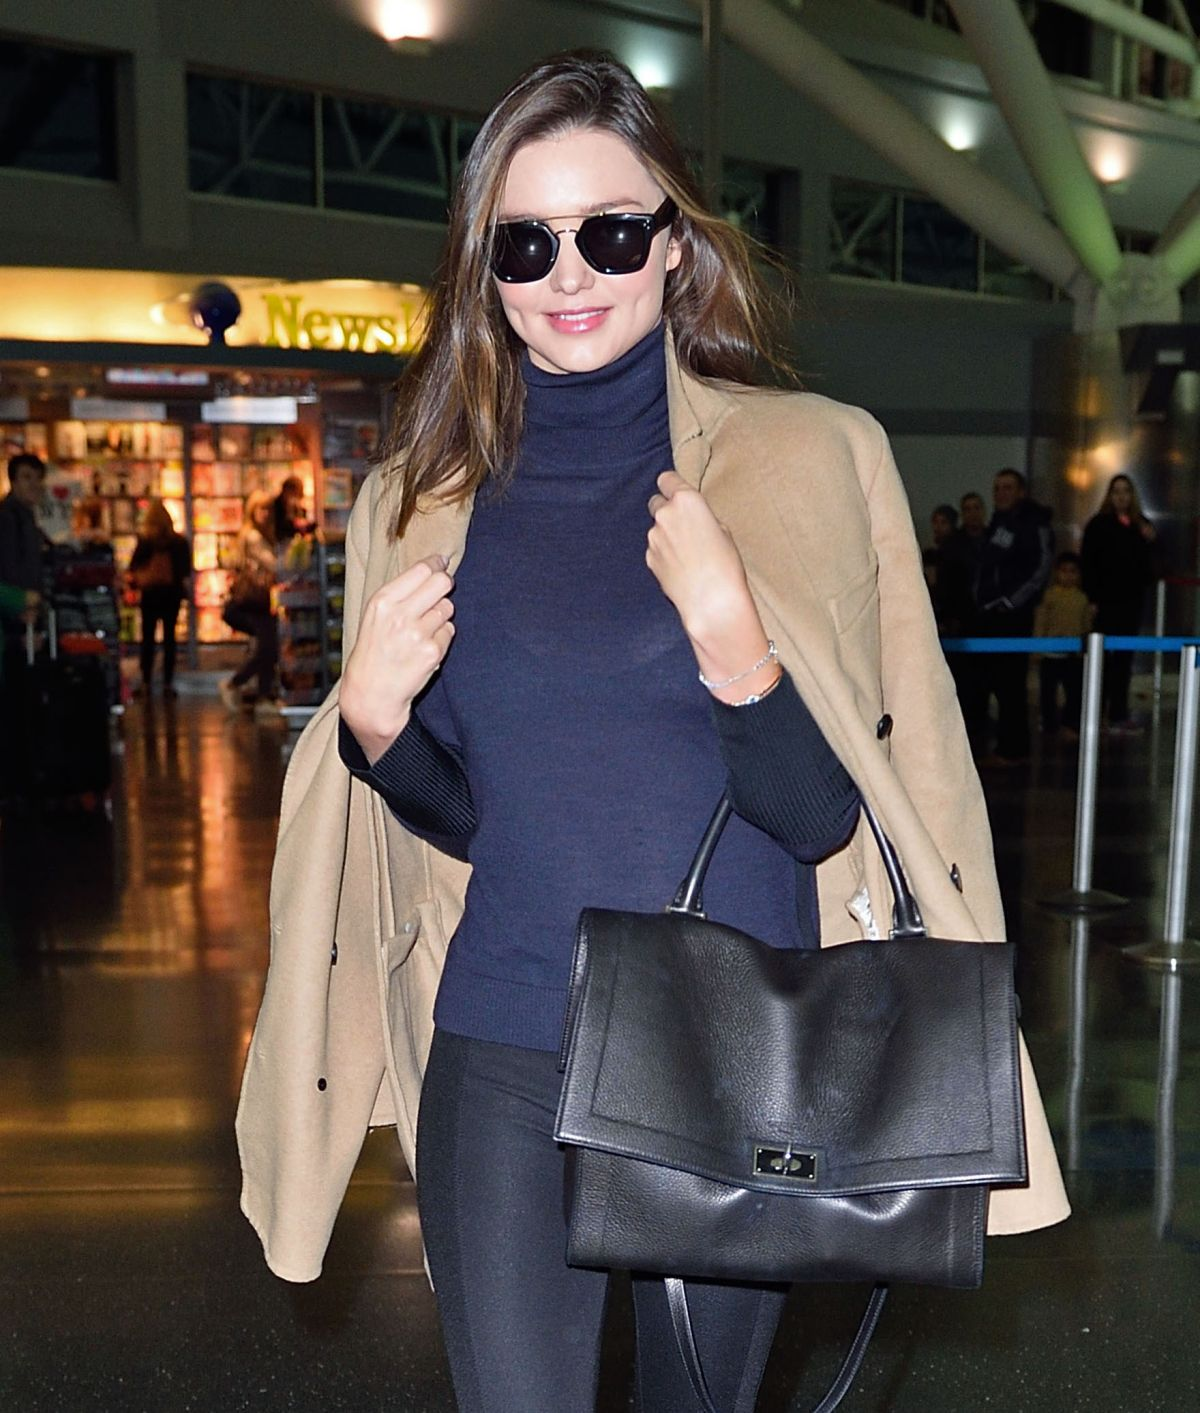 MIRANDA KERR Arrives at JFK Airport in New York 11/15/2015